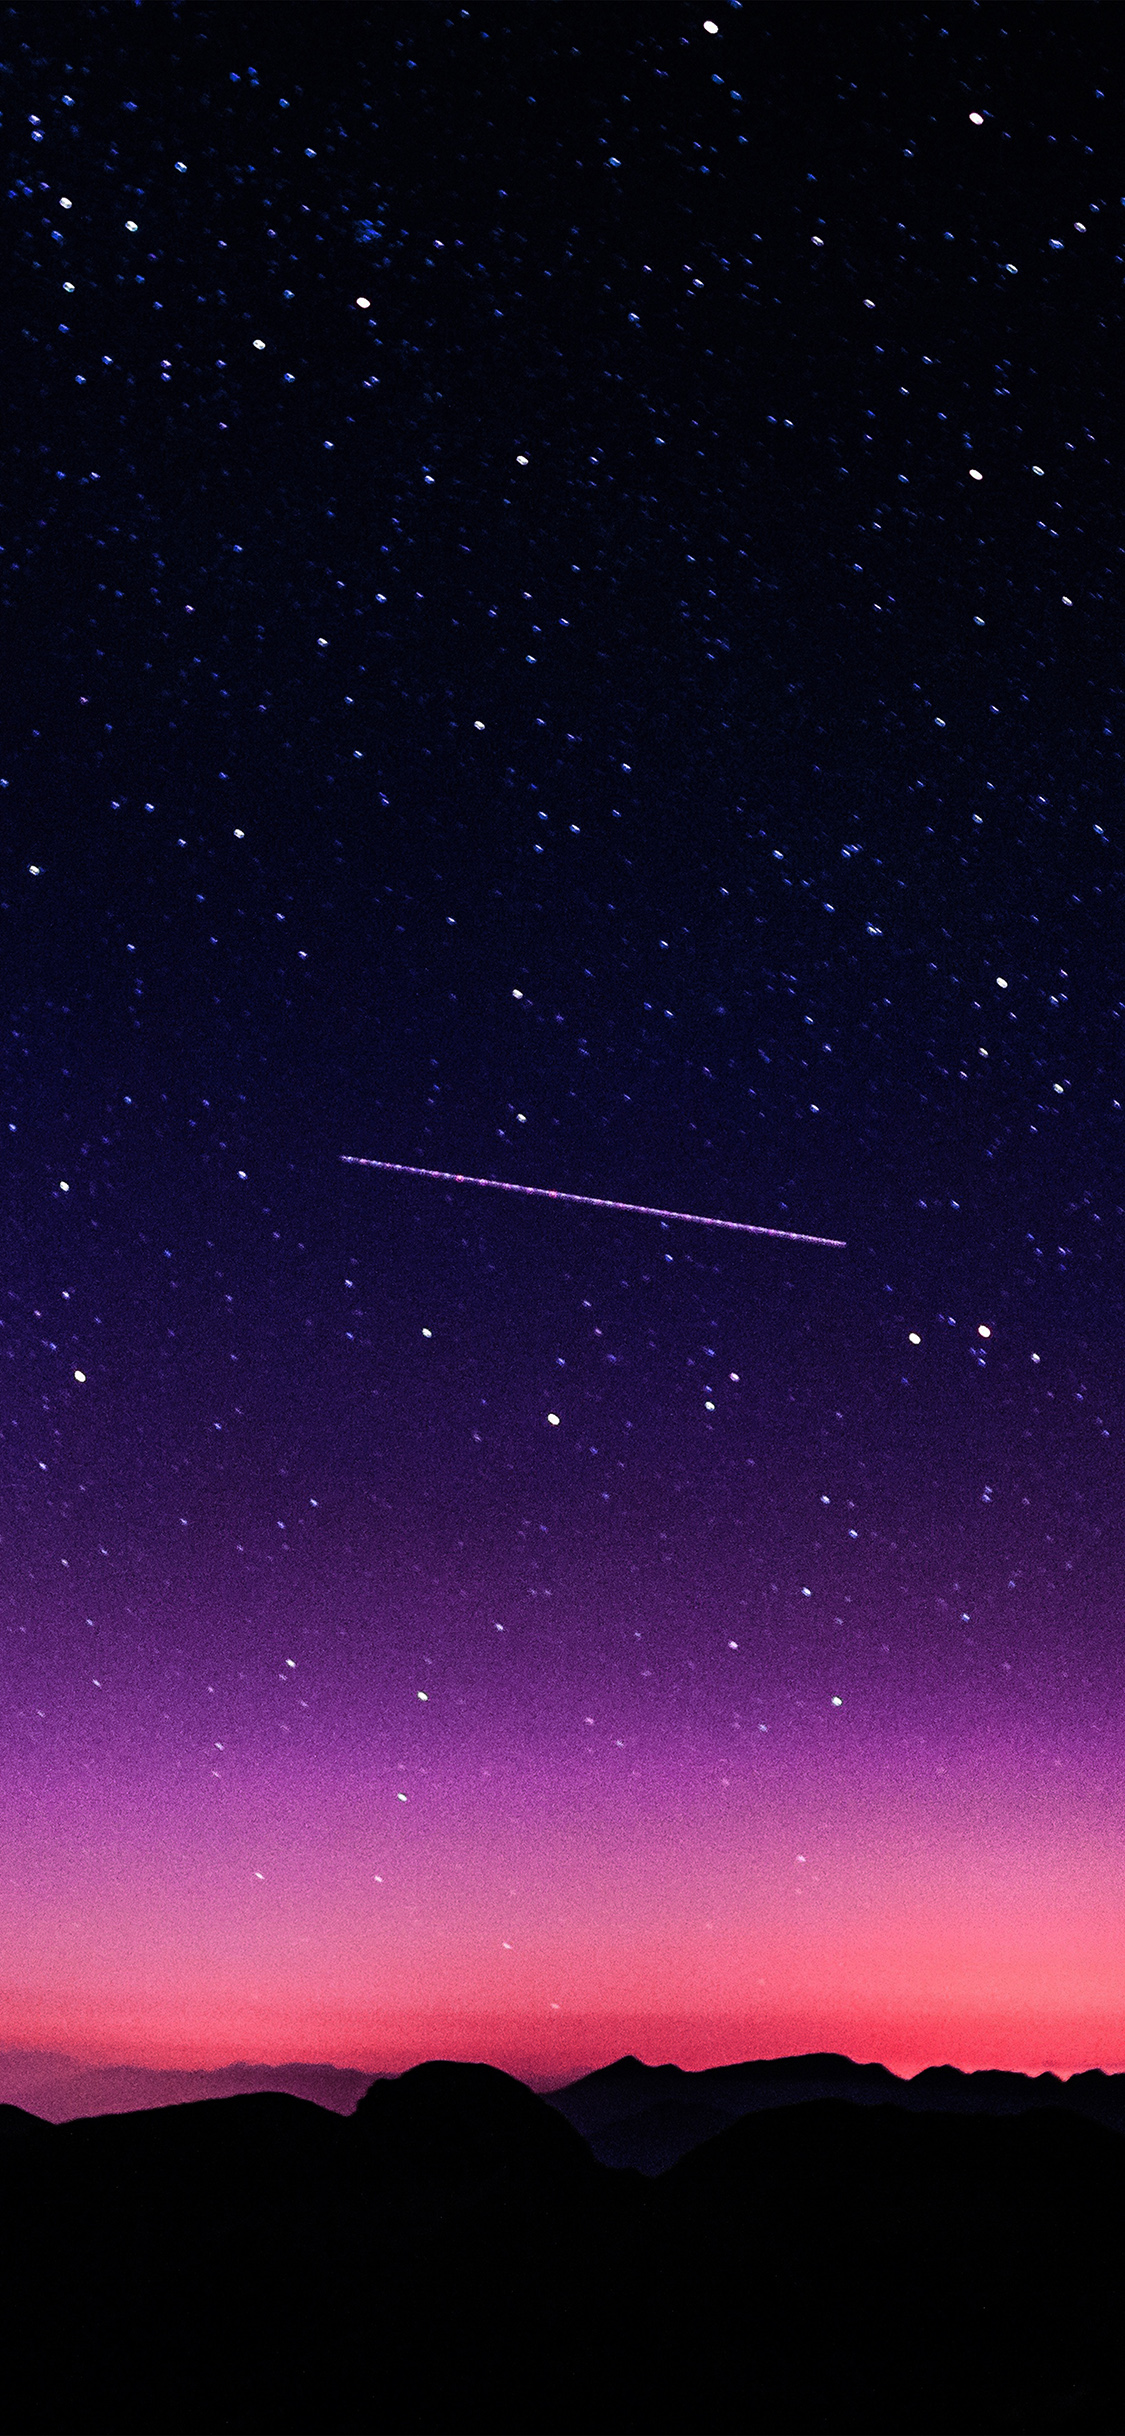 iPhoneXpaperscom iPhone X wallpaper ne64 star galaxy night 1125x2436